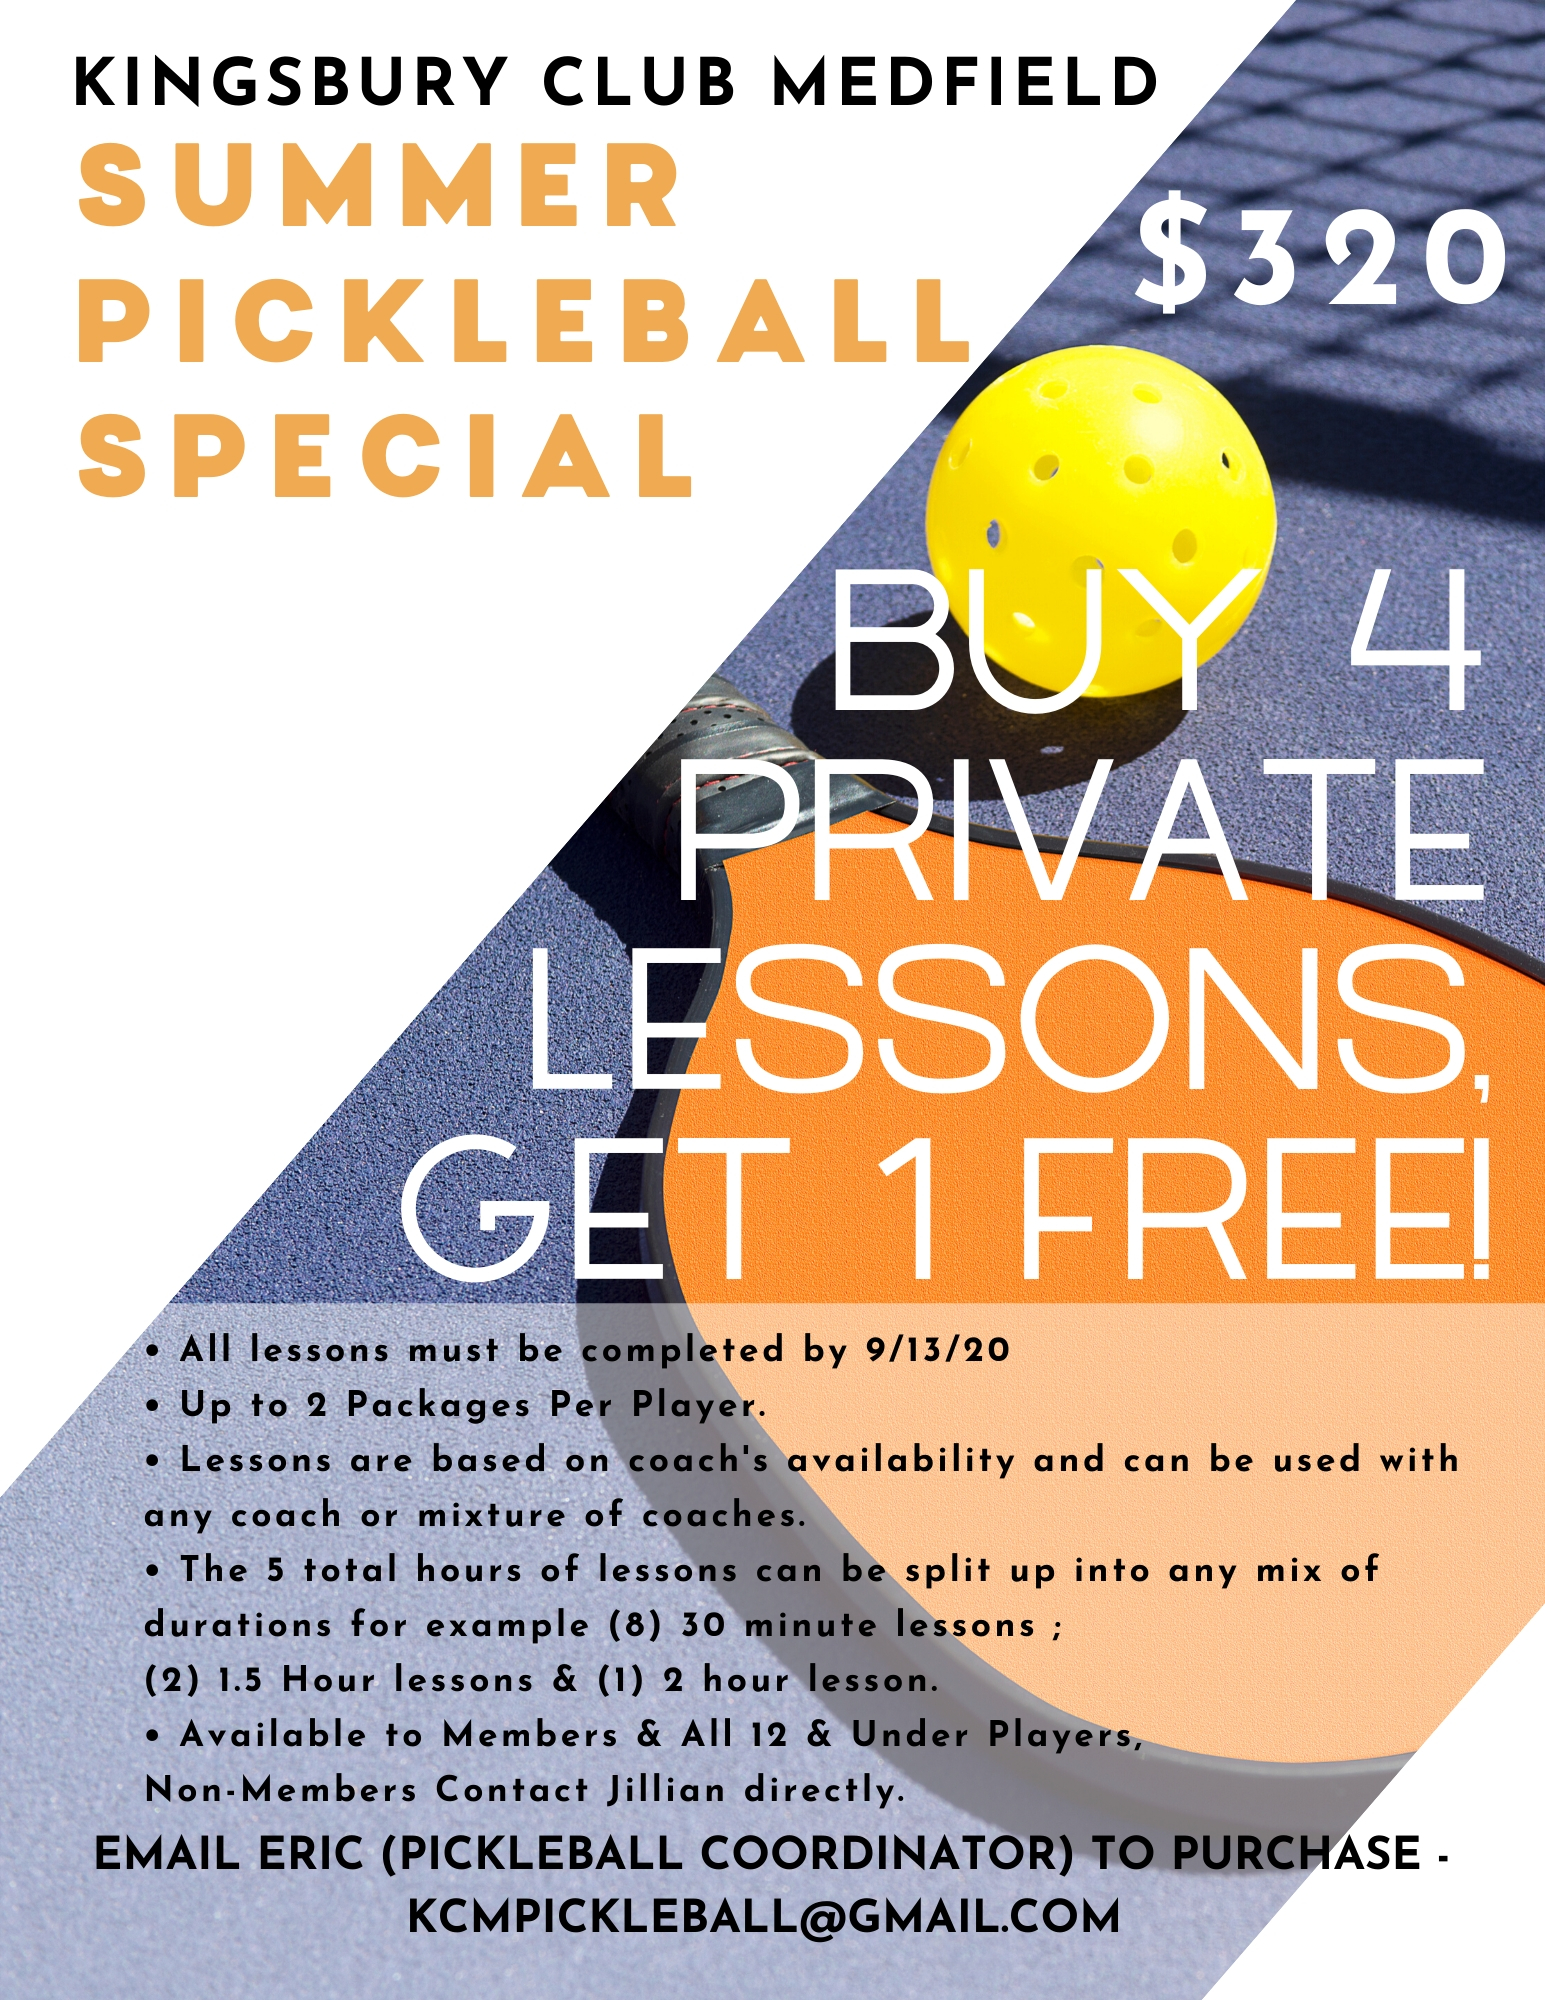 Summer Pickleball Lesson Special 2020